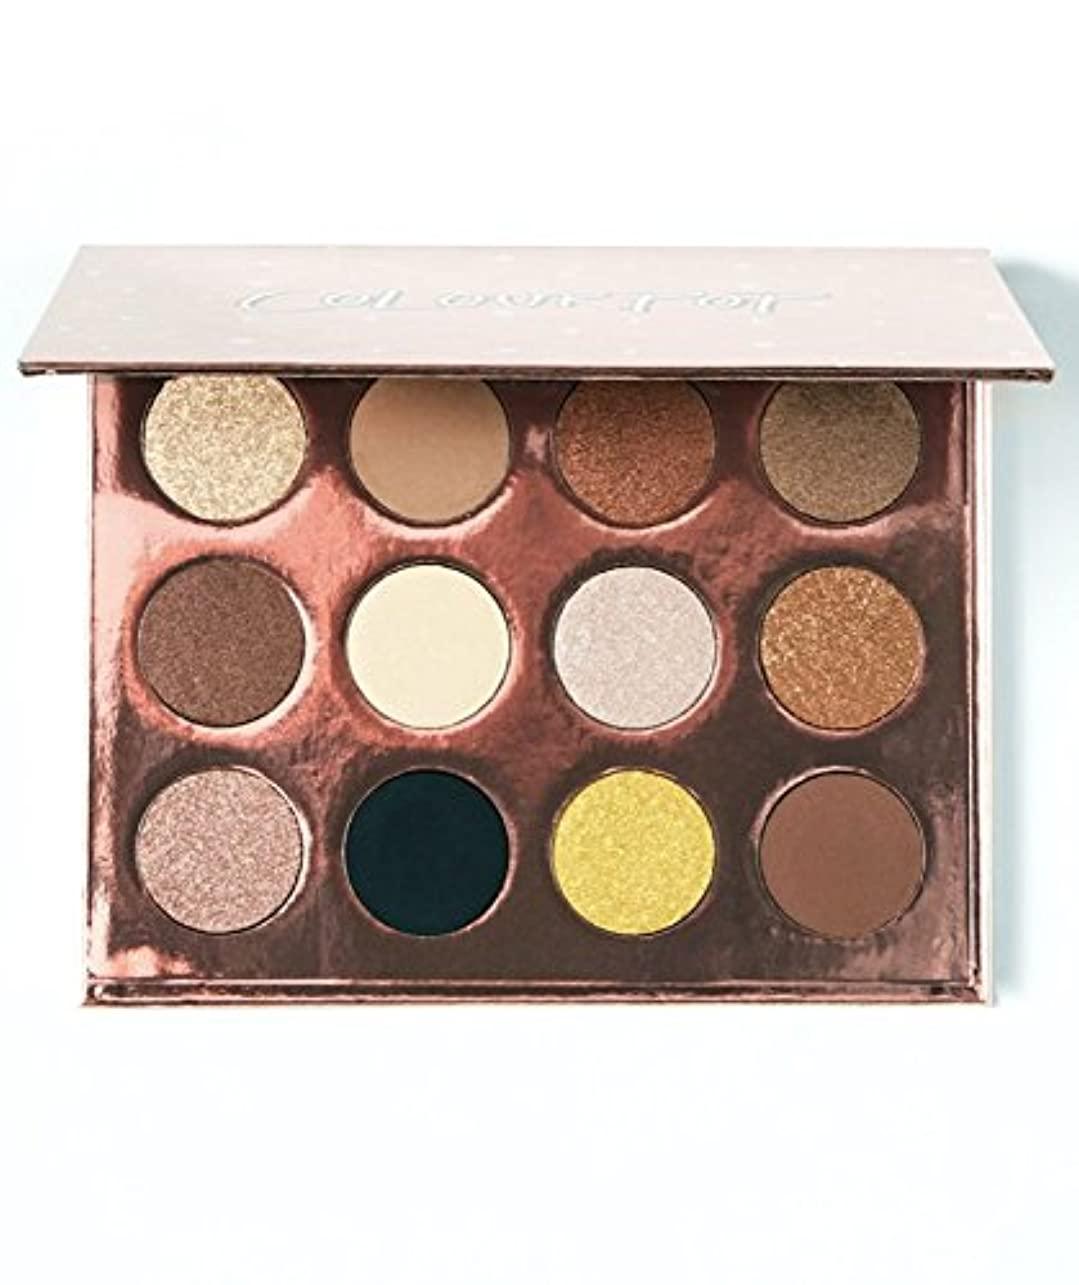 カラーポップ Colourpop I Think I Love You Pressed Powder Shadow Palette